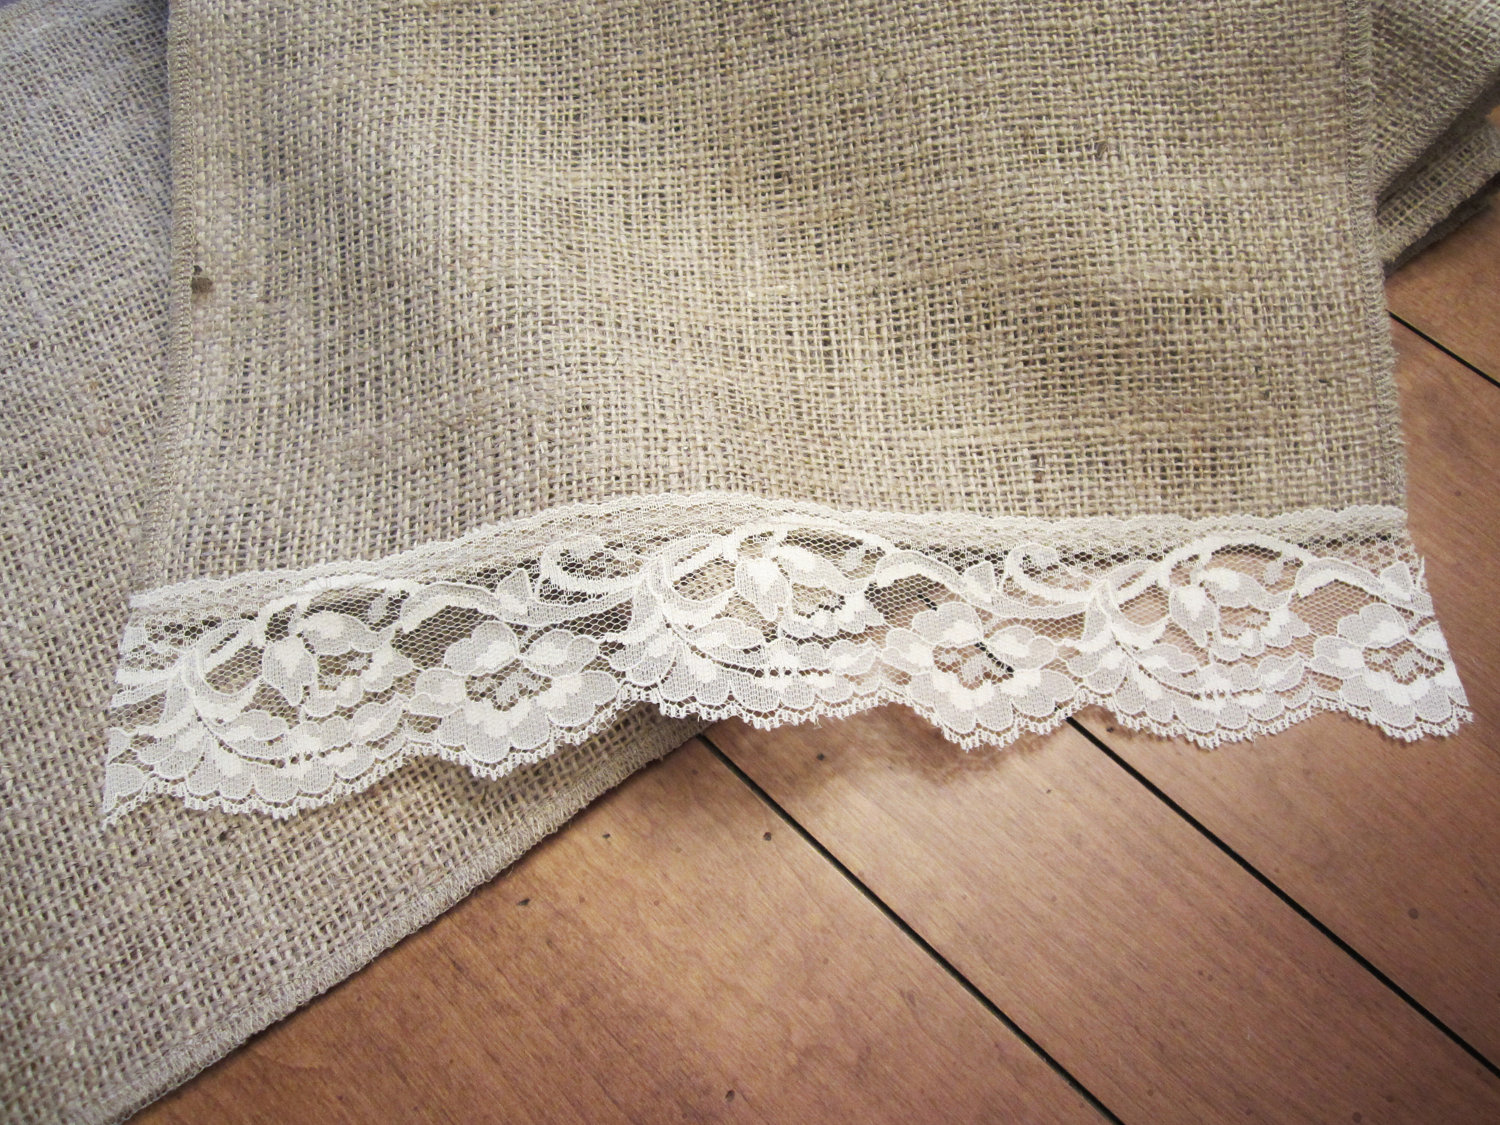 Dresser Runner | Thanksgiving Table Runner | Lace Table Runners